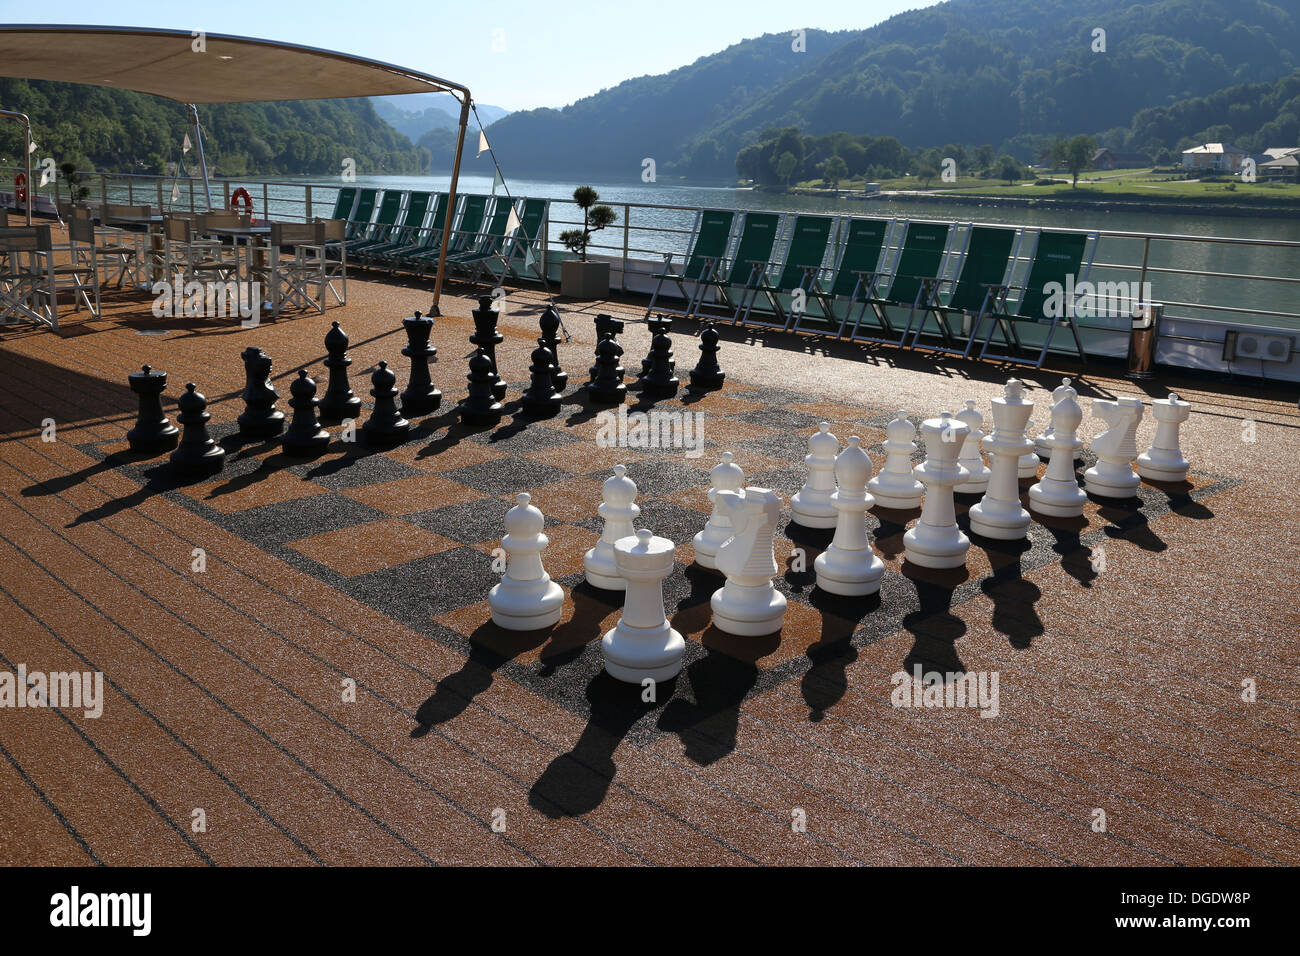 Giant chess set on a river cruise ship - Stock Image